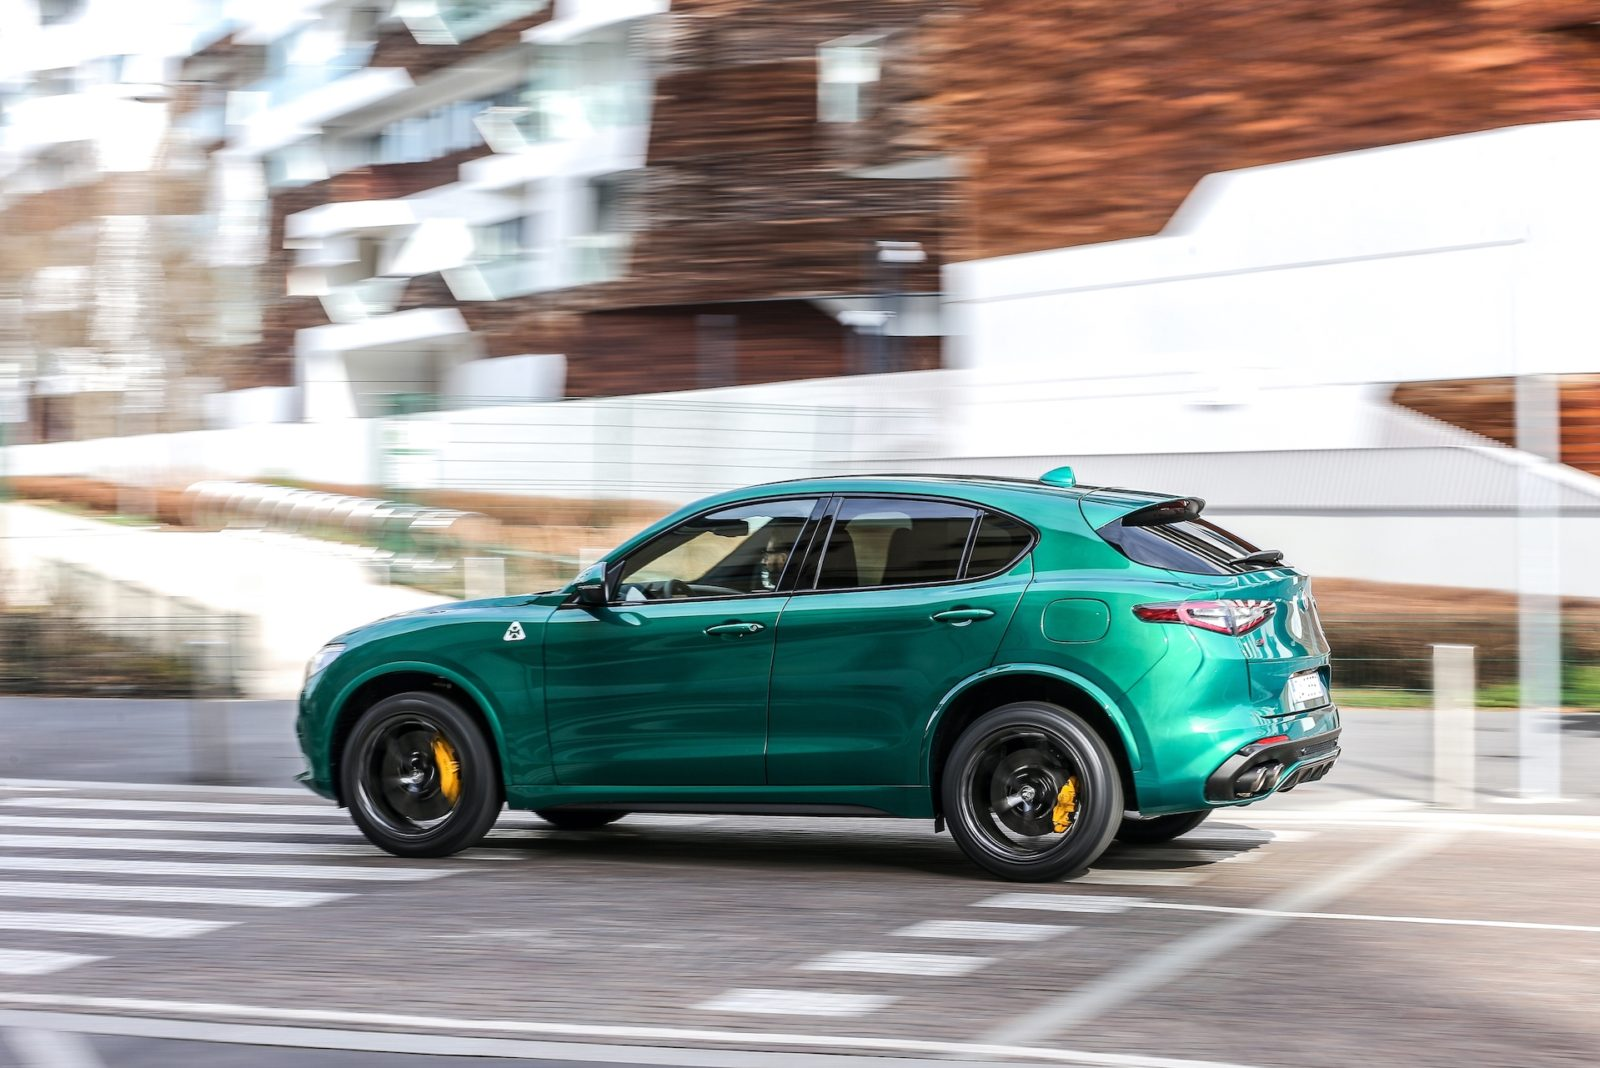 2021-alfa-romeo-stelvio-and-2021-ford-ranger-tremor-reviewed,-audi-e-tron-gt-preview:-what's-new-@-the-car-connection